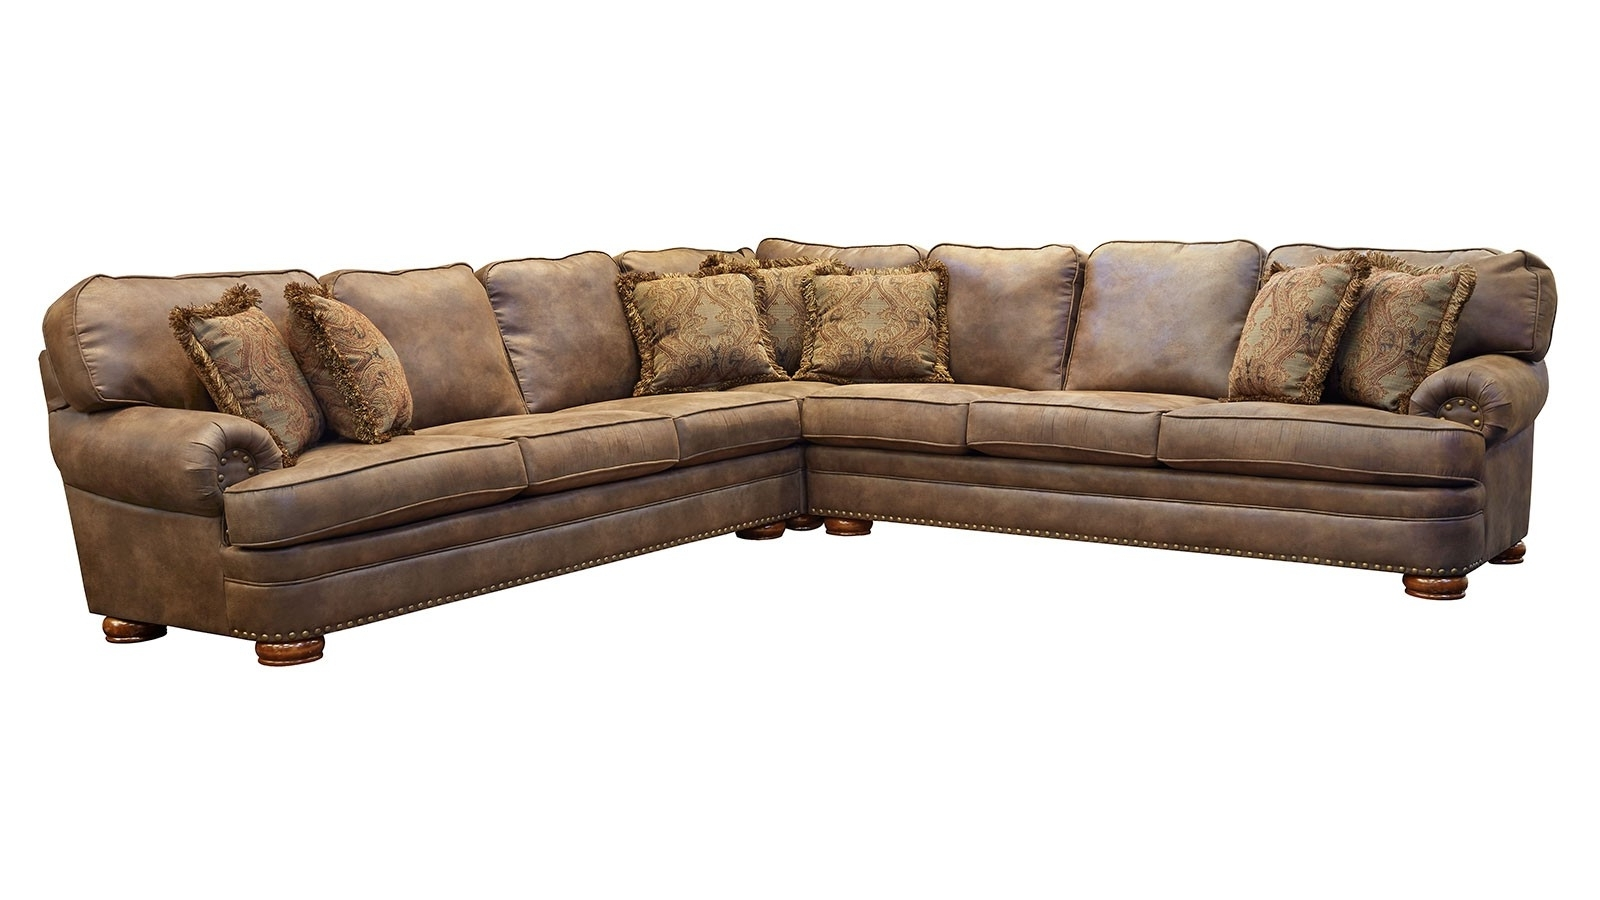 Gallery Furniture Within Gallery Furniture Sectional Sofas (Gallery 4 of 15)